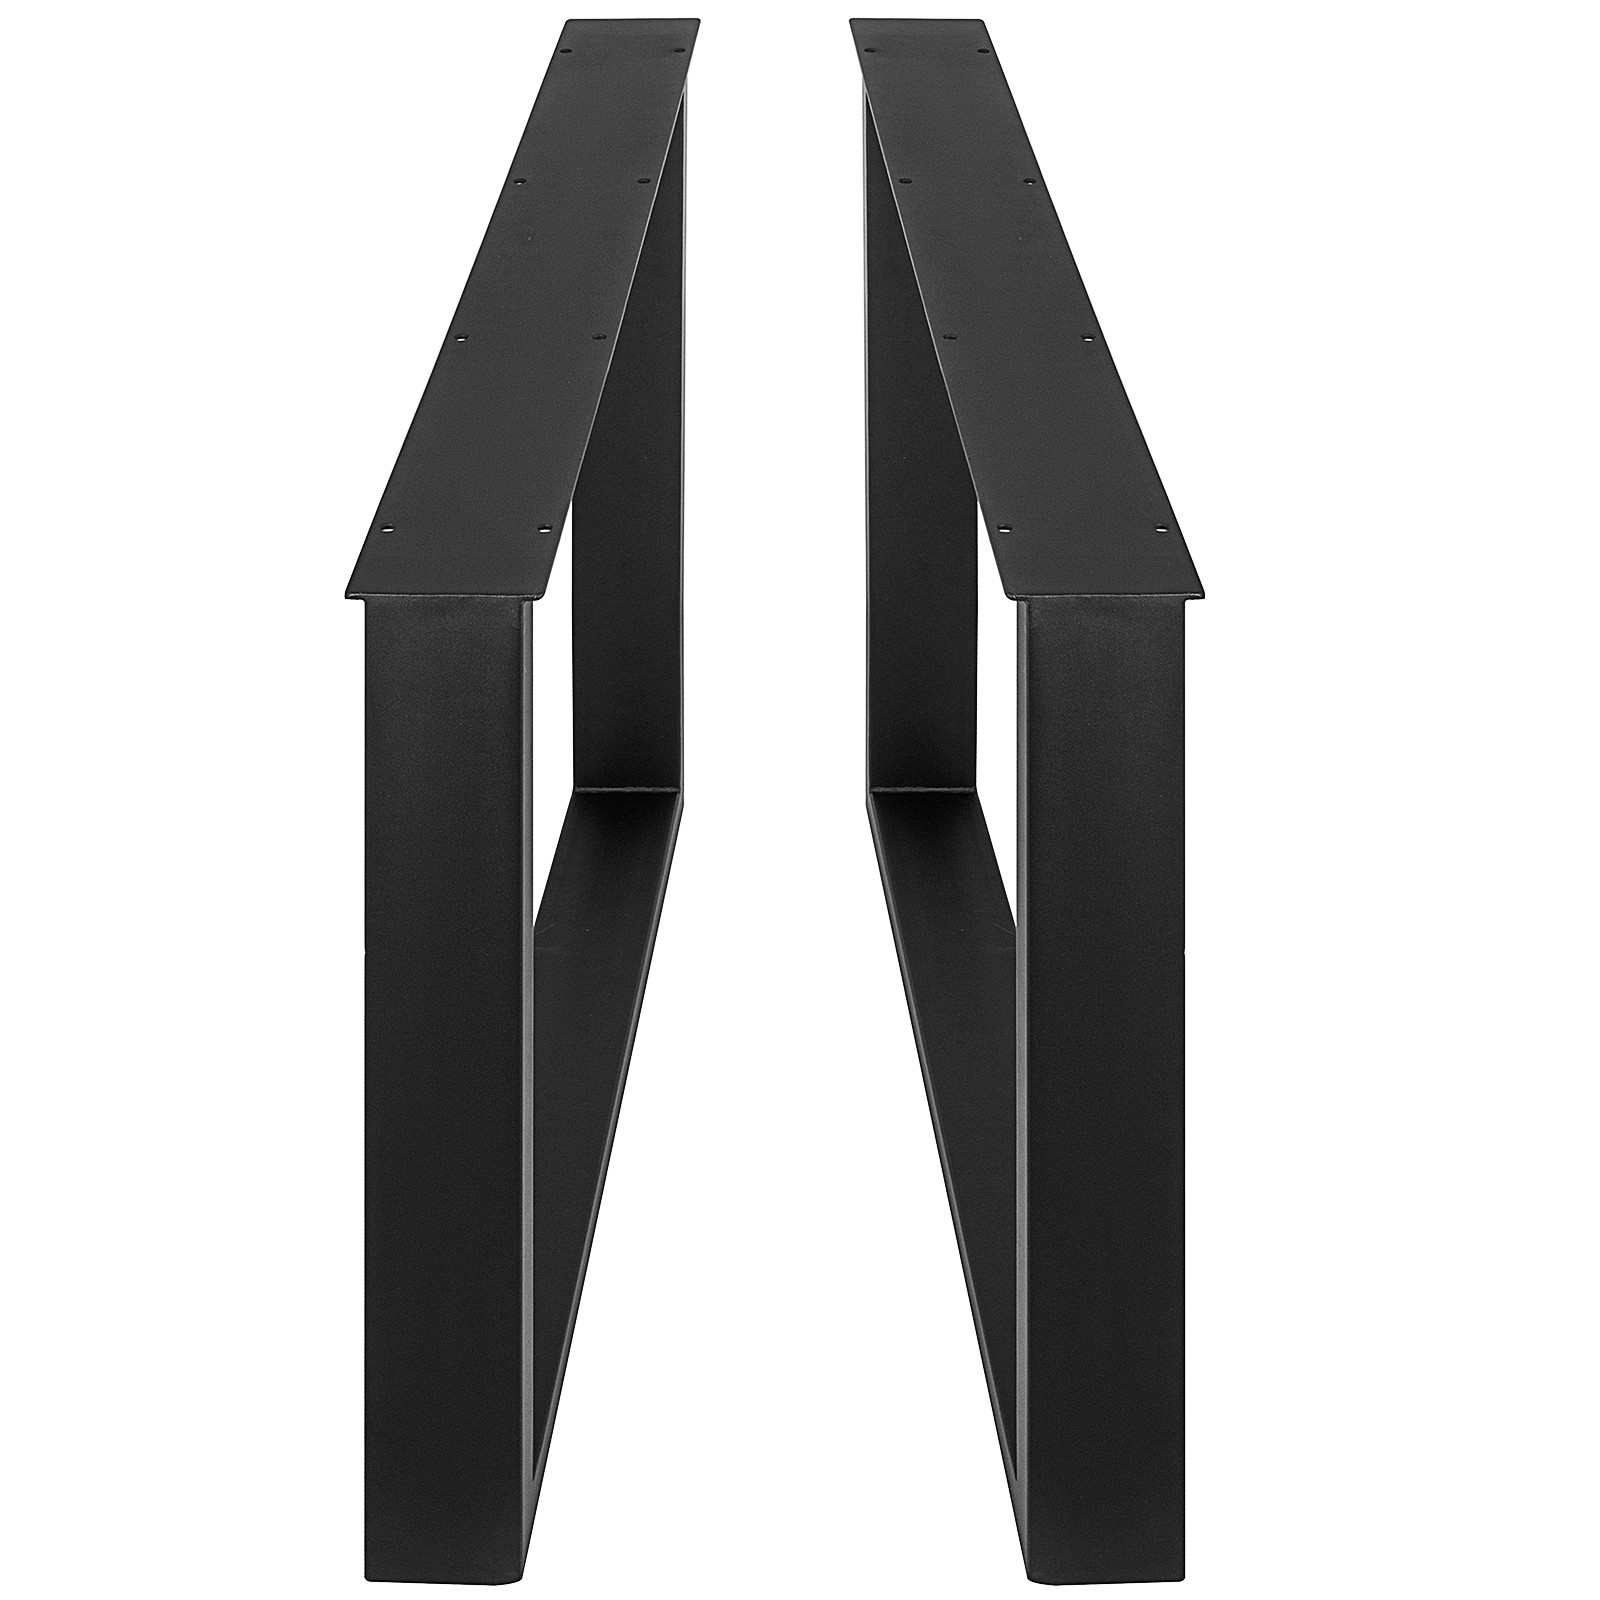 2X-Table-Legs-Black-Dining-Table-Leg-Heavy-Duty-Computer-Desk-Legs-Rectangle thumbnail 89